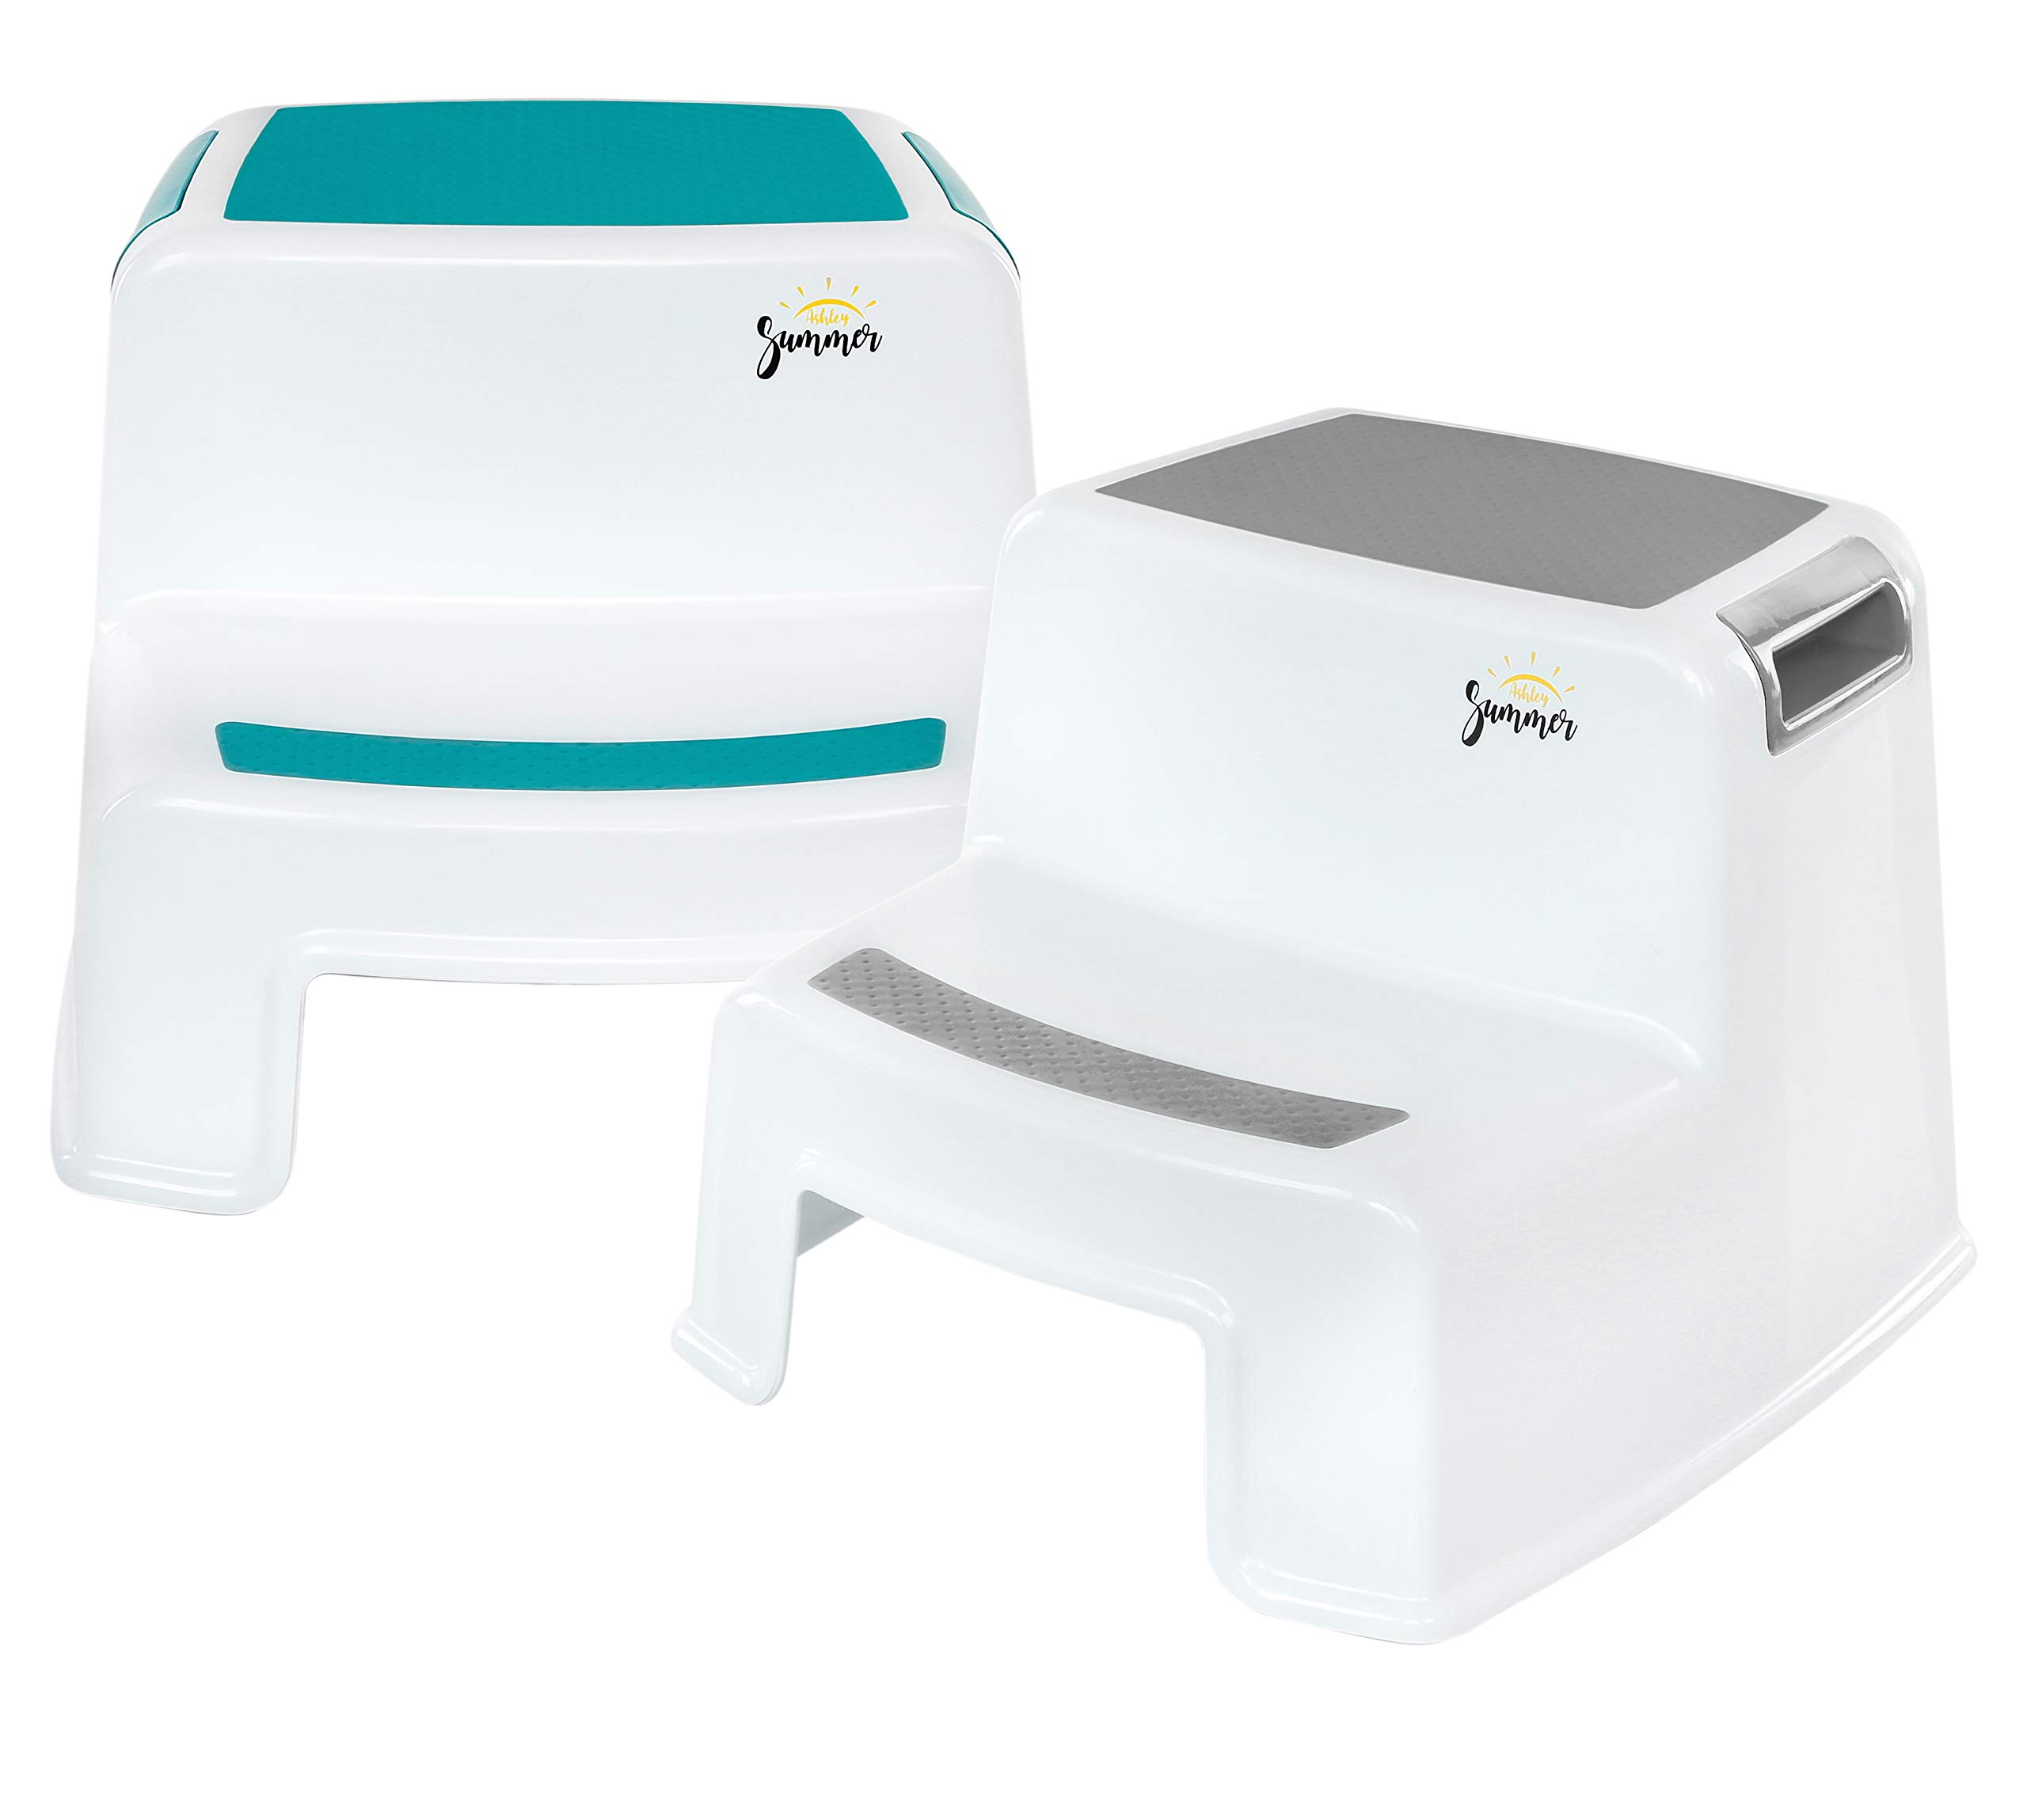 2 Step Stool for Kids (2 Pack)   Grey & Teal   Dual Height Toddler Step Stool for Potty Training & Kid Step Stool for Kitchen and Bathroom Sink   Slip Resistant Grip for Safety   by Ashley Summer by Ashley Summer